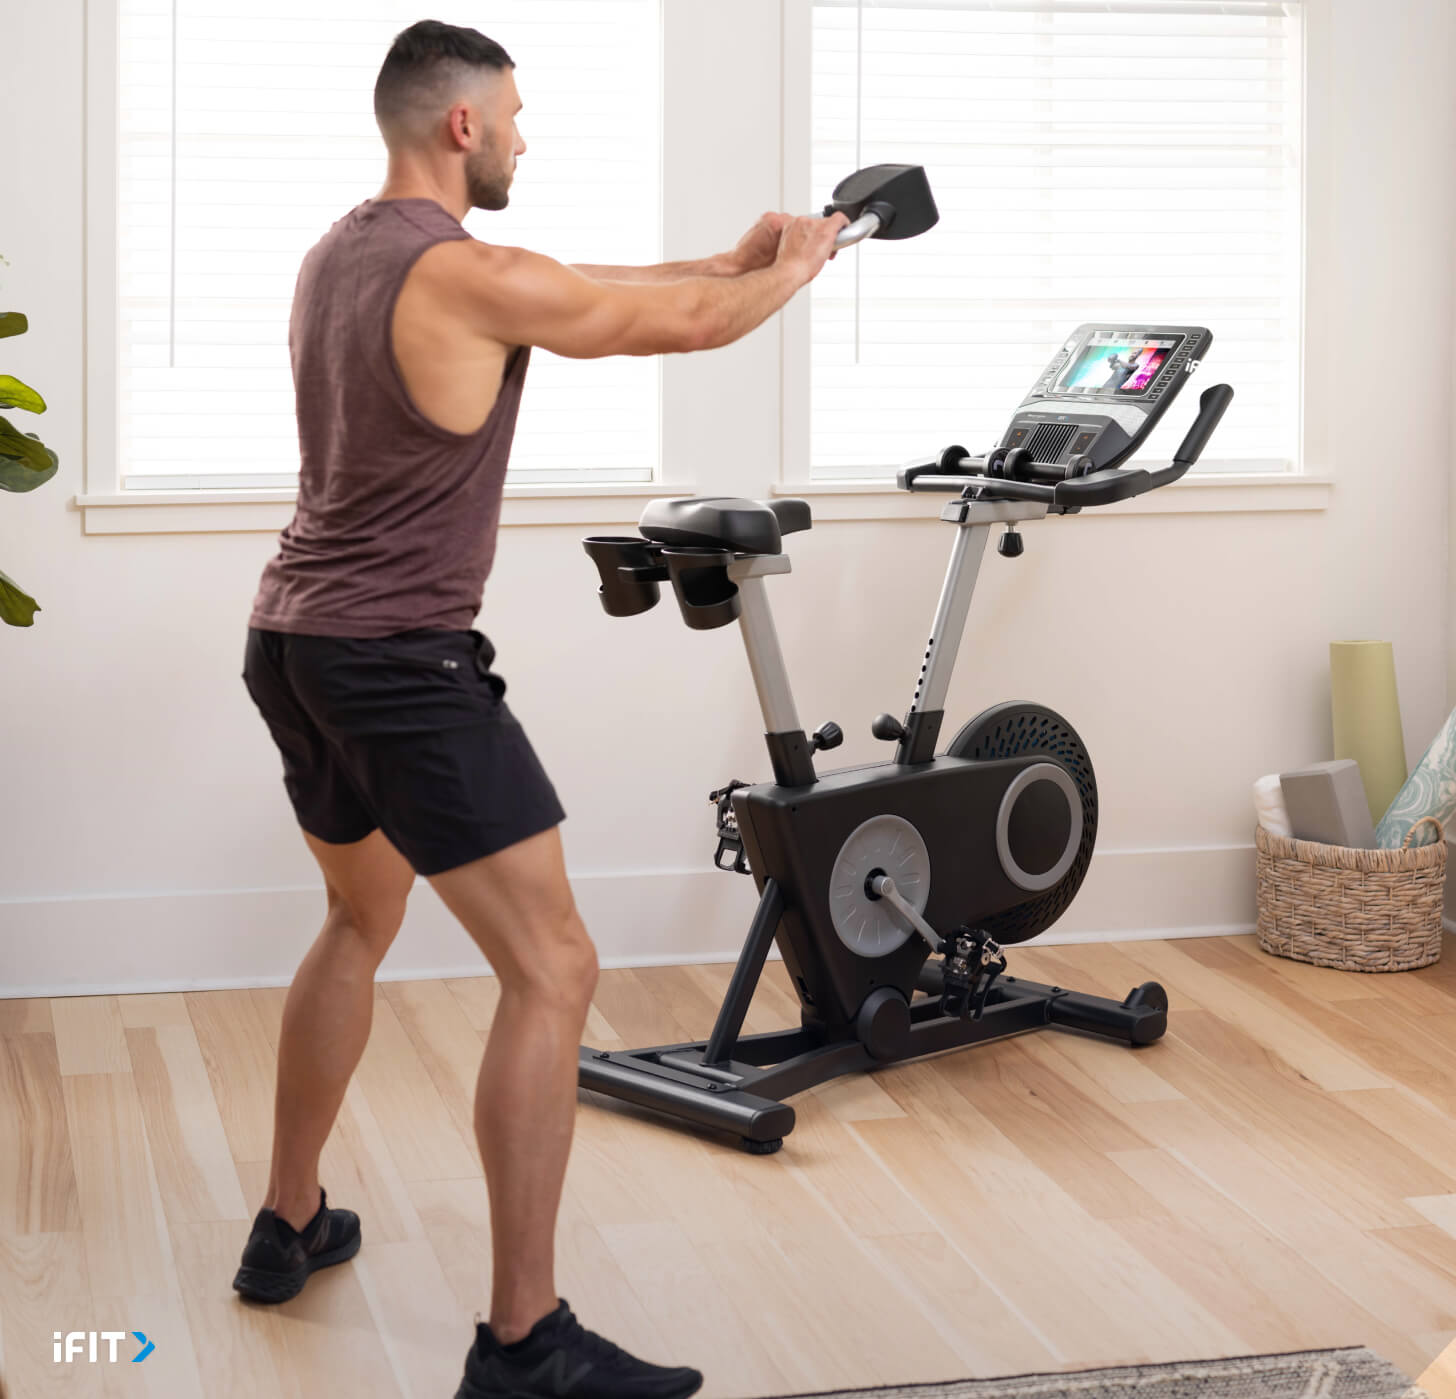 Man does an iFIT Tabata workout